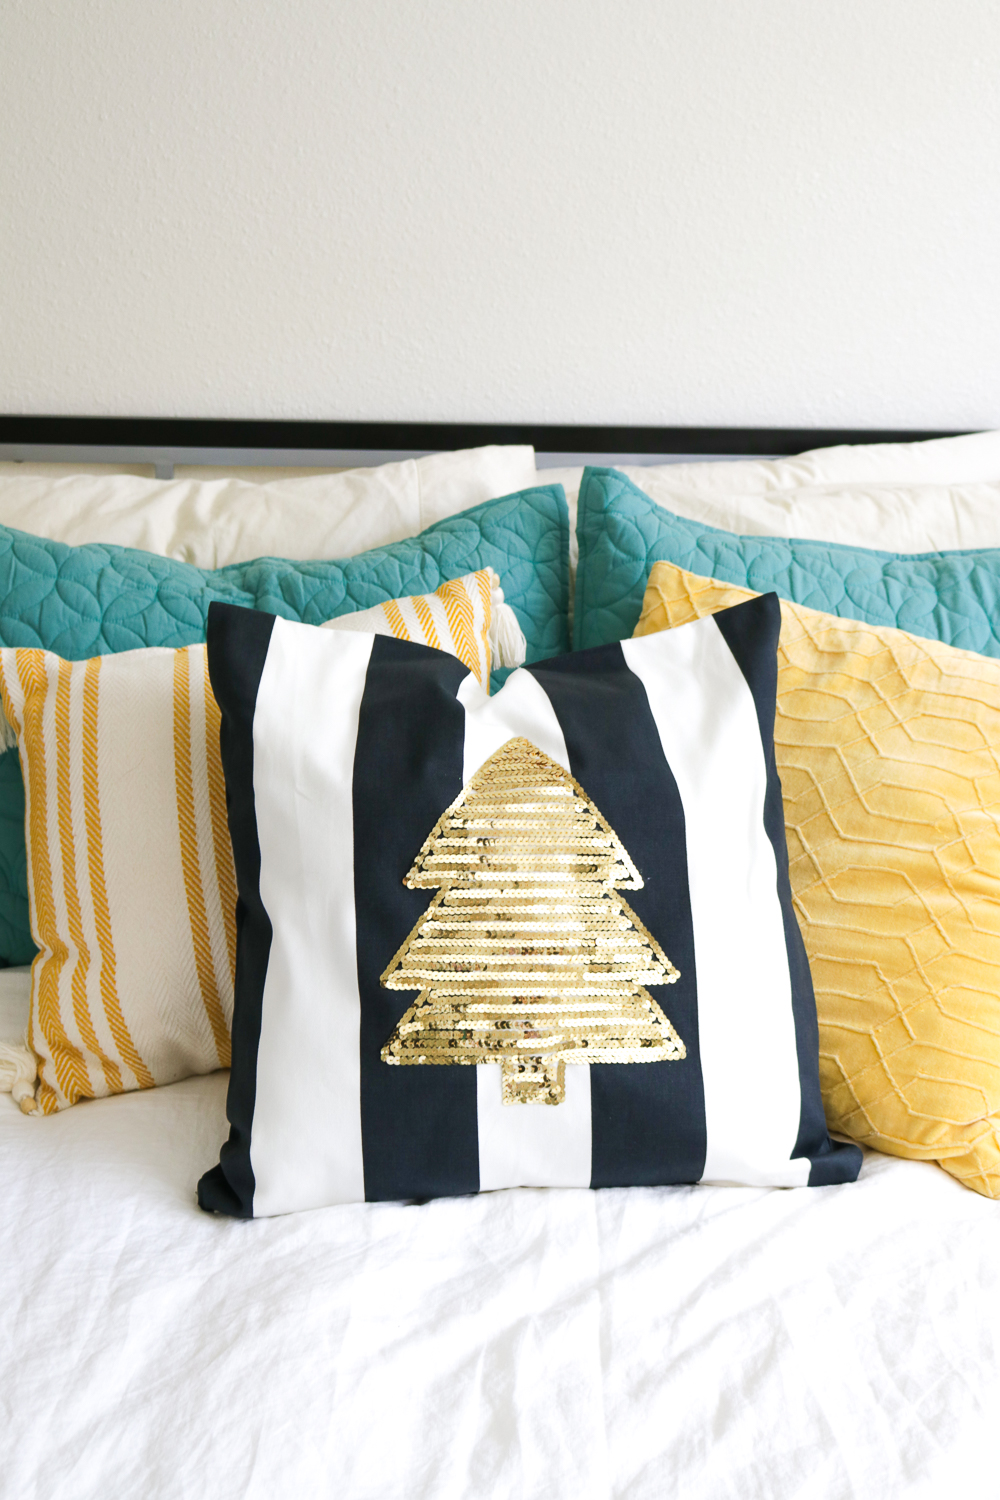 DIY Sequin Tree Pillow for Christmas | Club Crafted